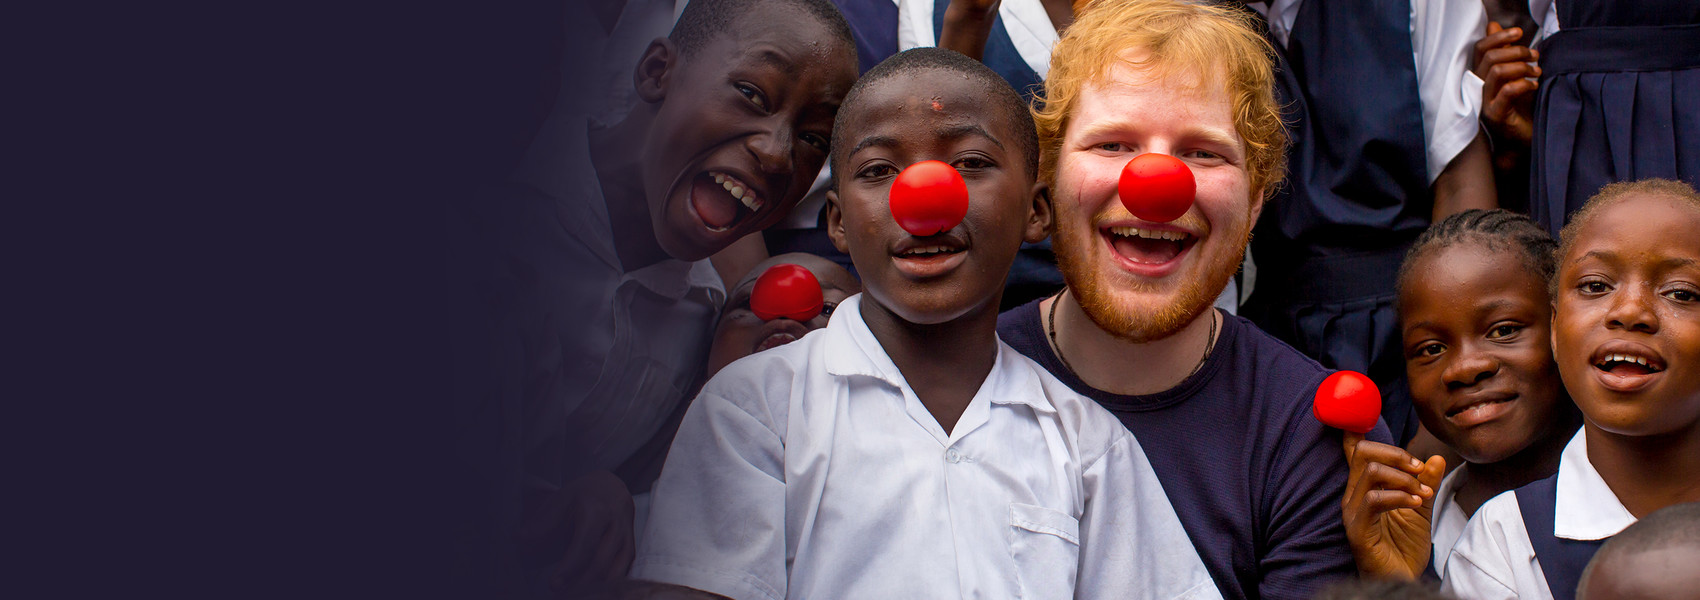 Ed Sheeran supports Red Nose Day